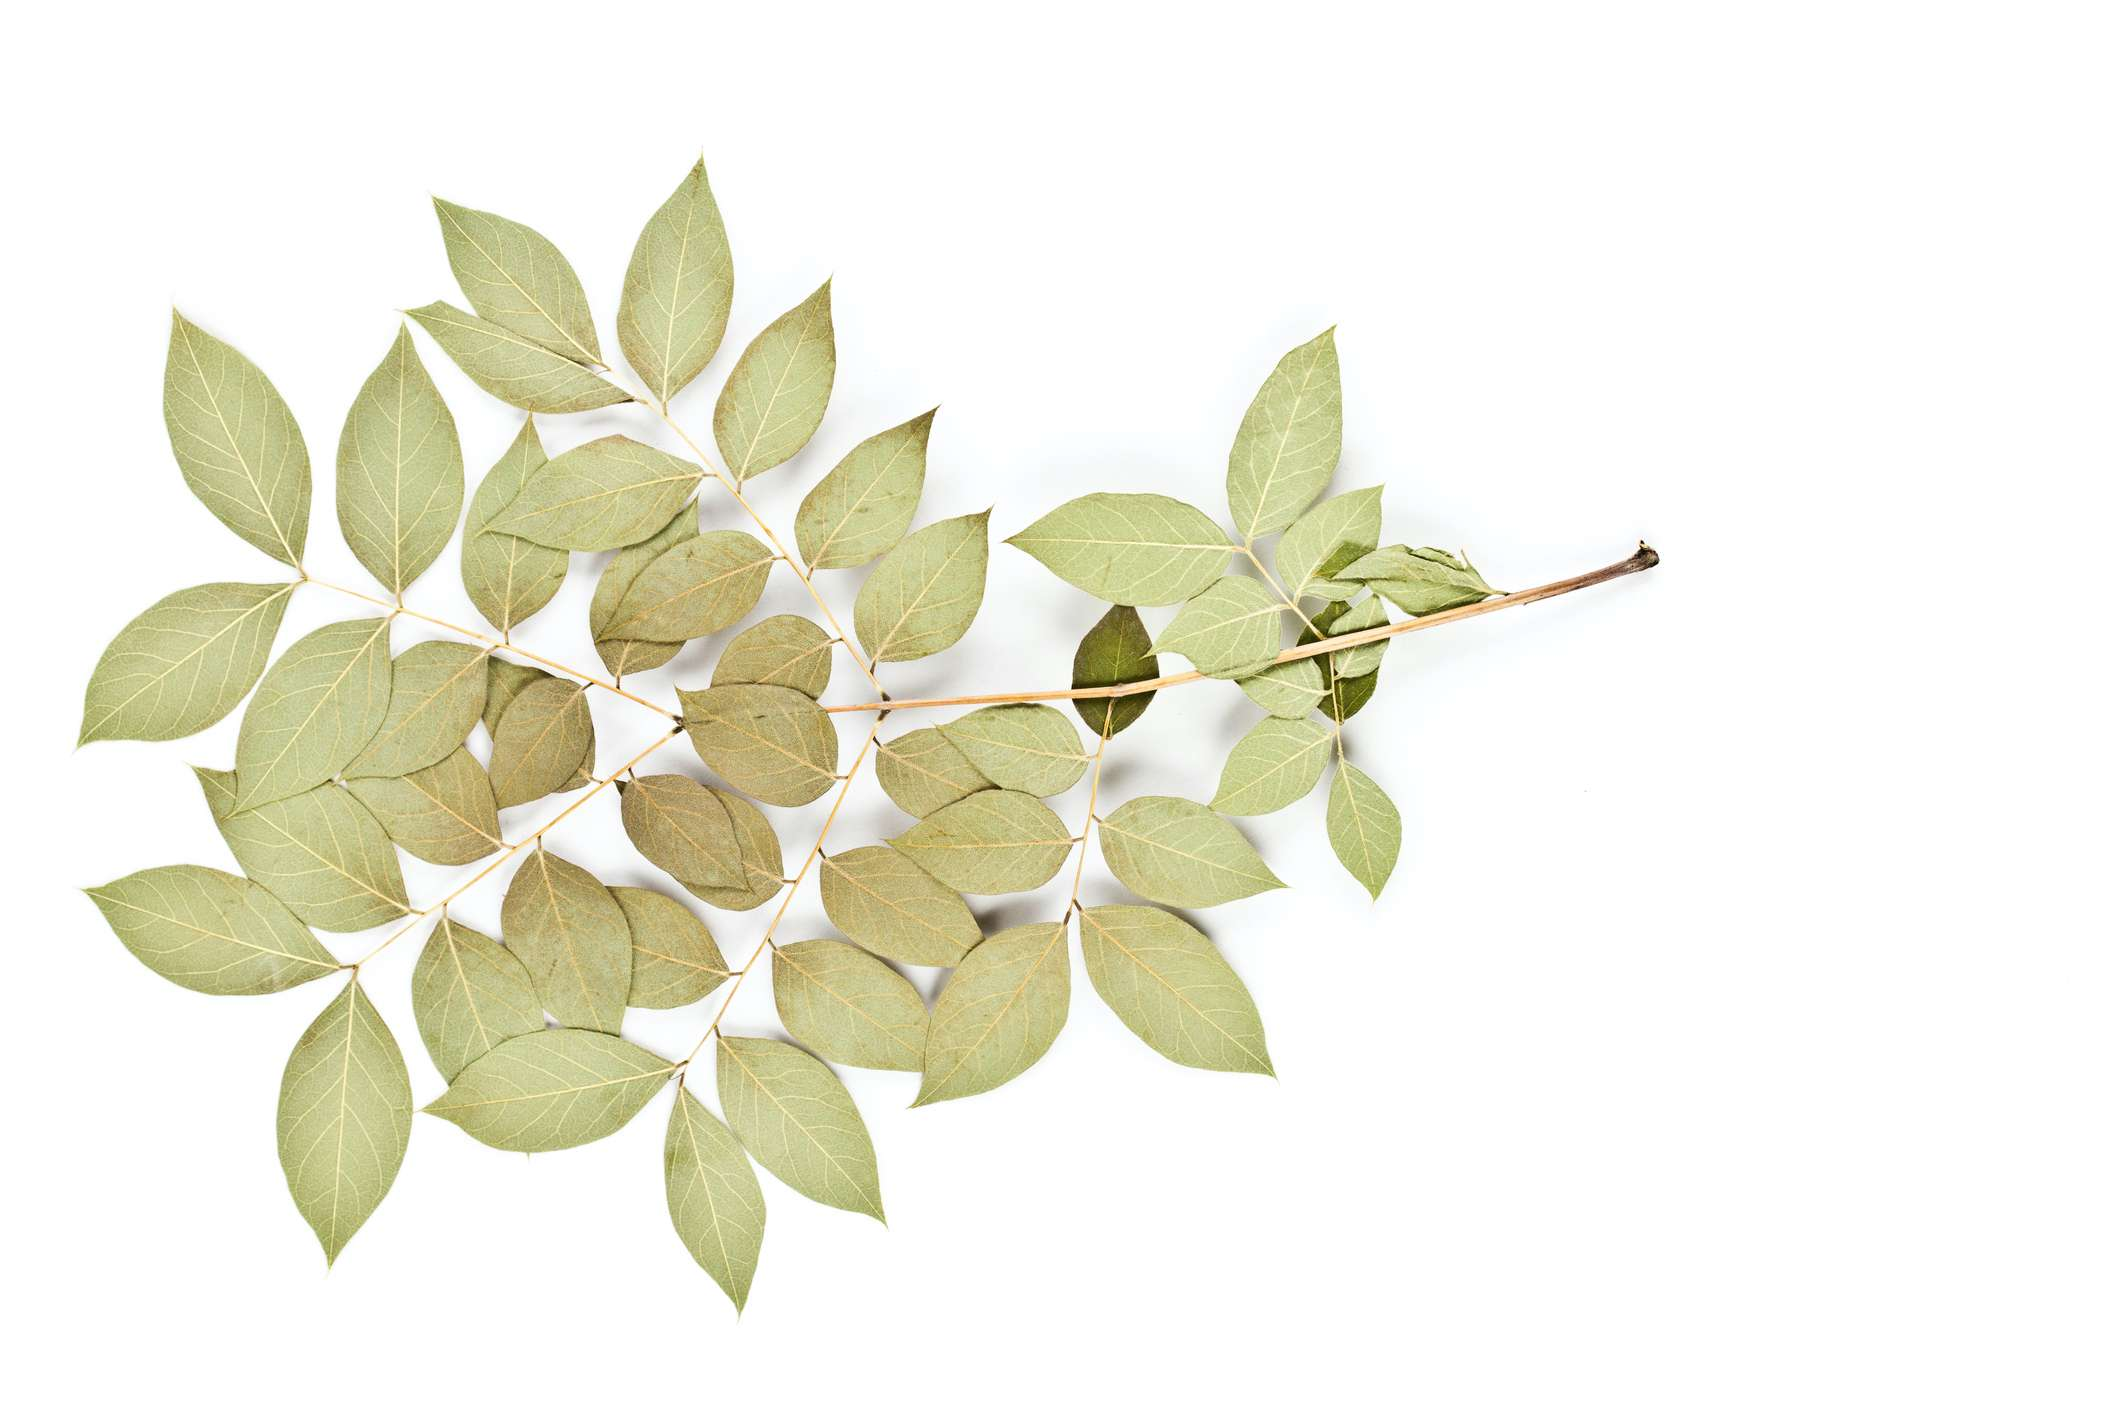 Kentucky Coffeetree Leaf on a white background.